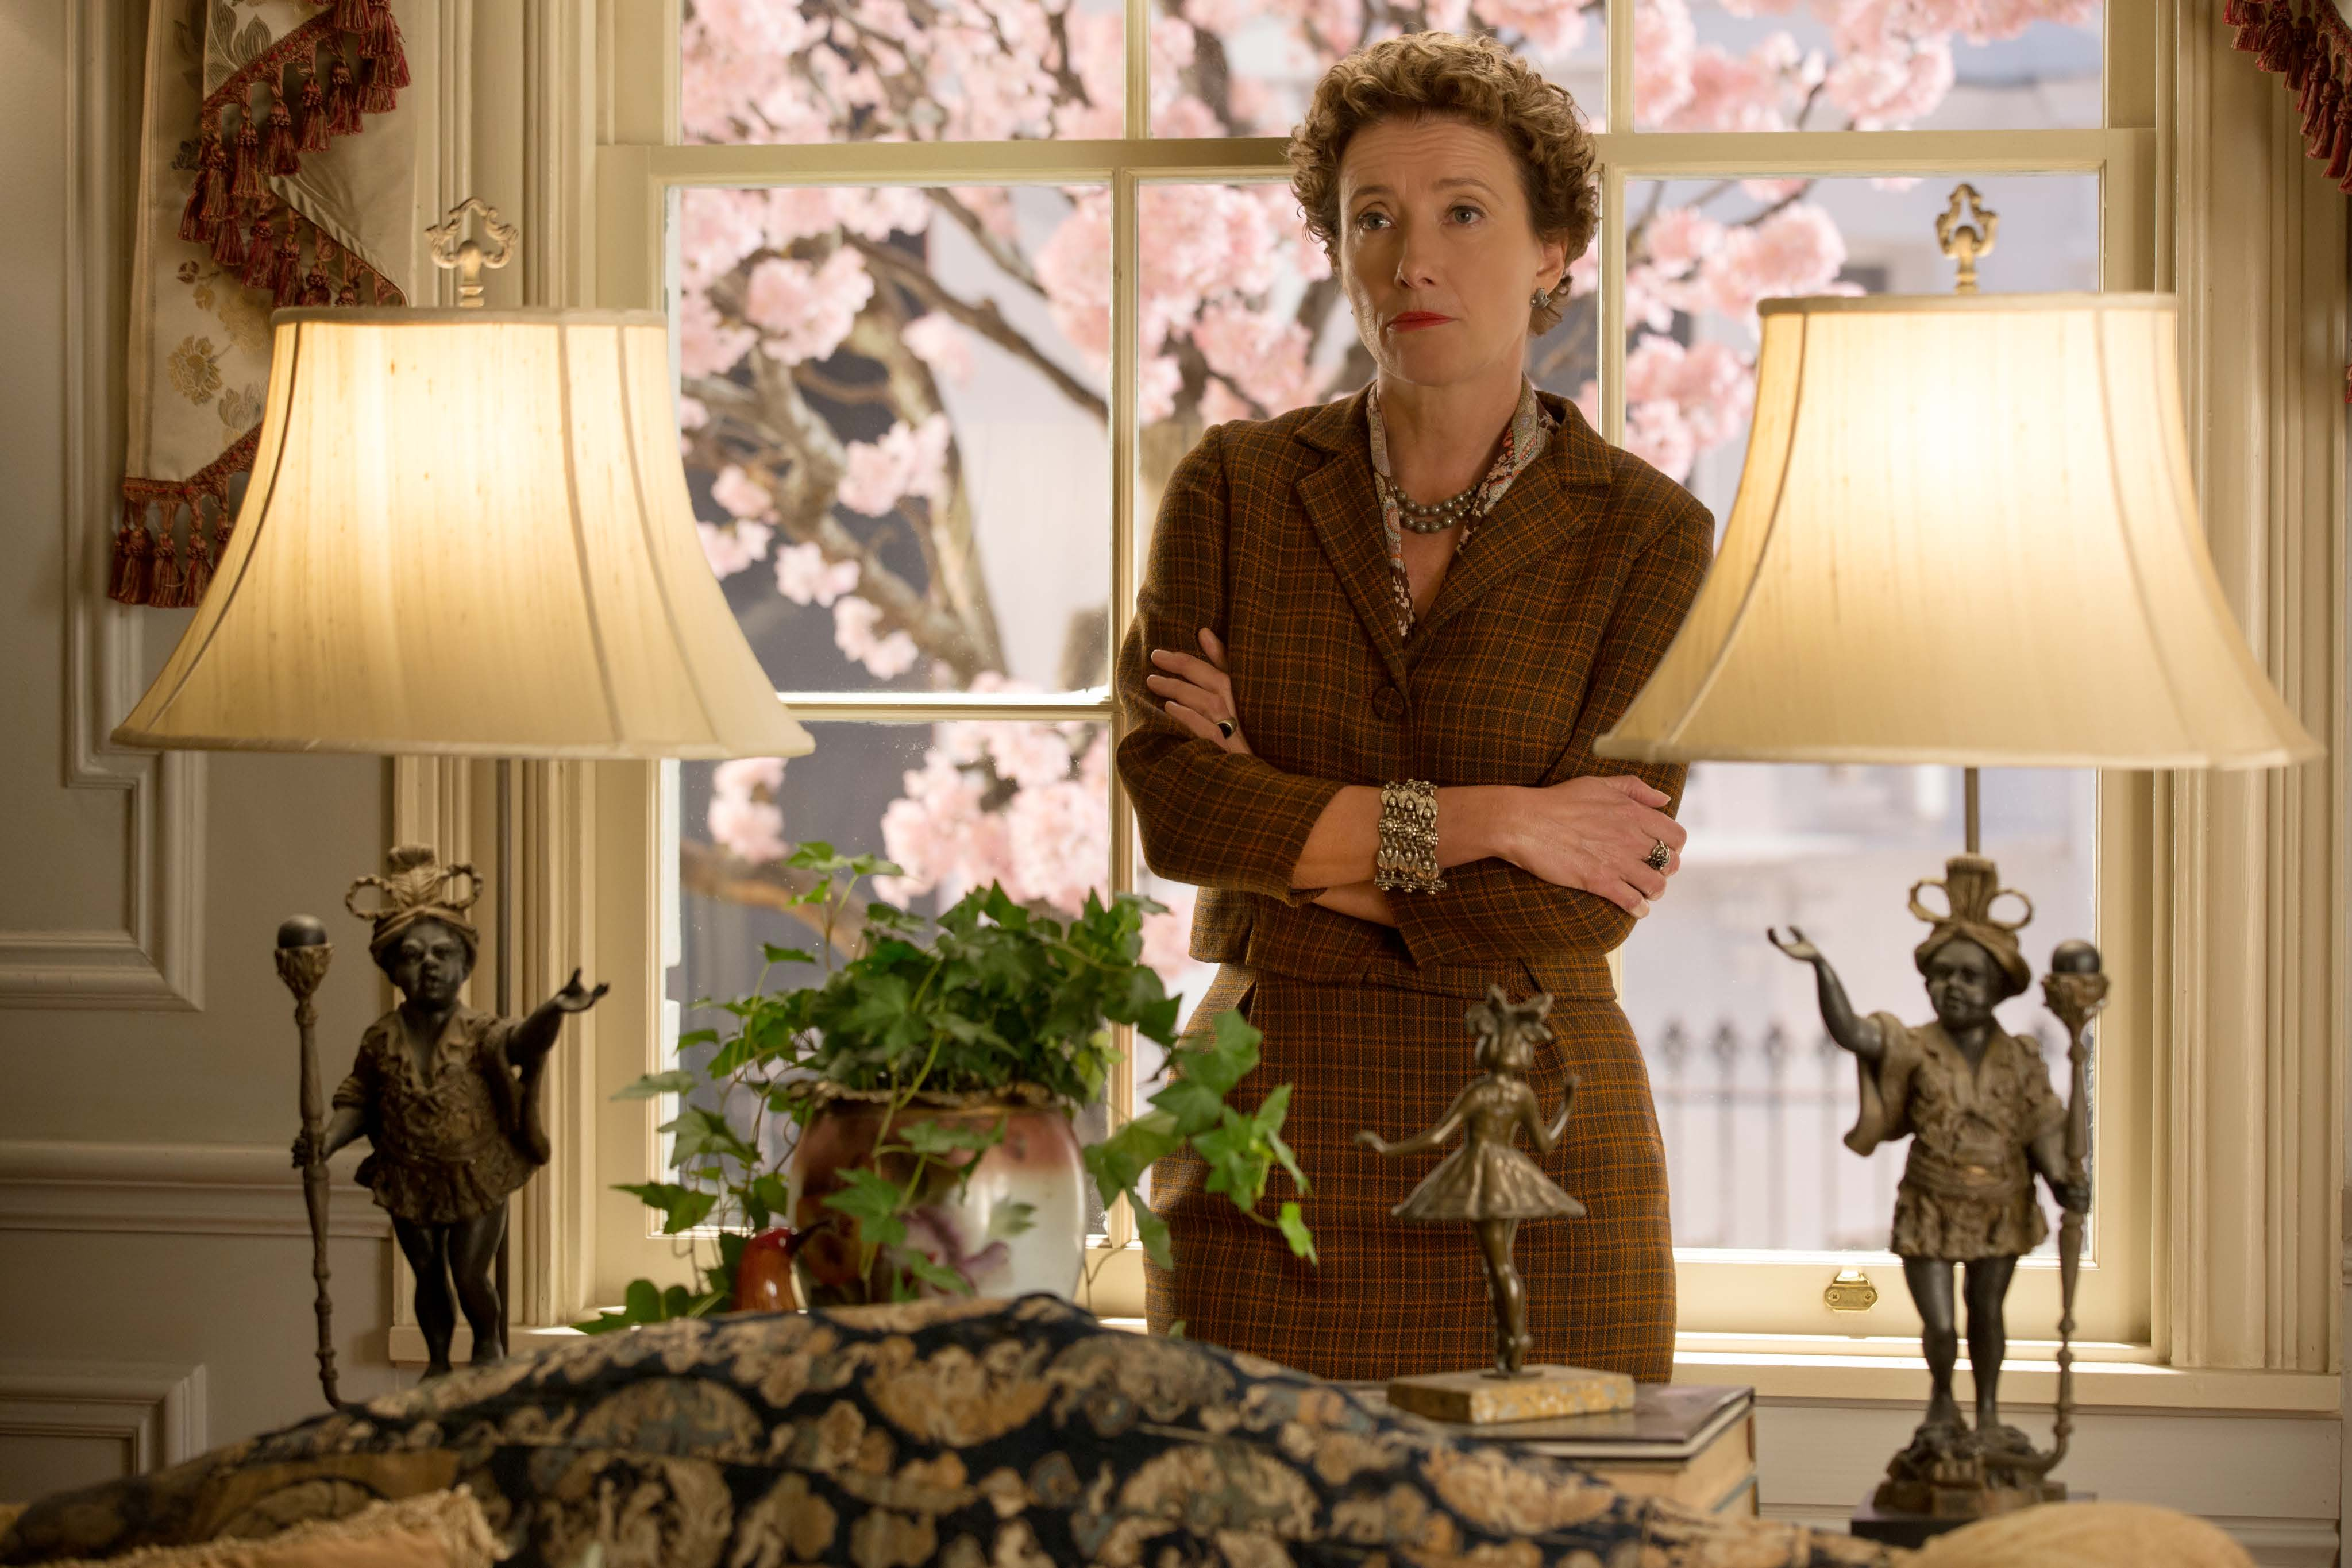 Mary Poppins, P.L. Travers, and 'Saving Mr. Banks'